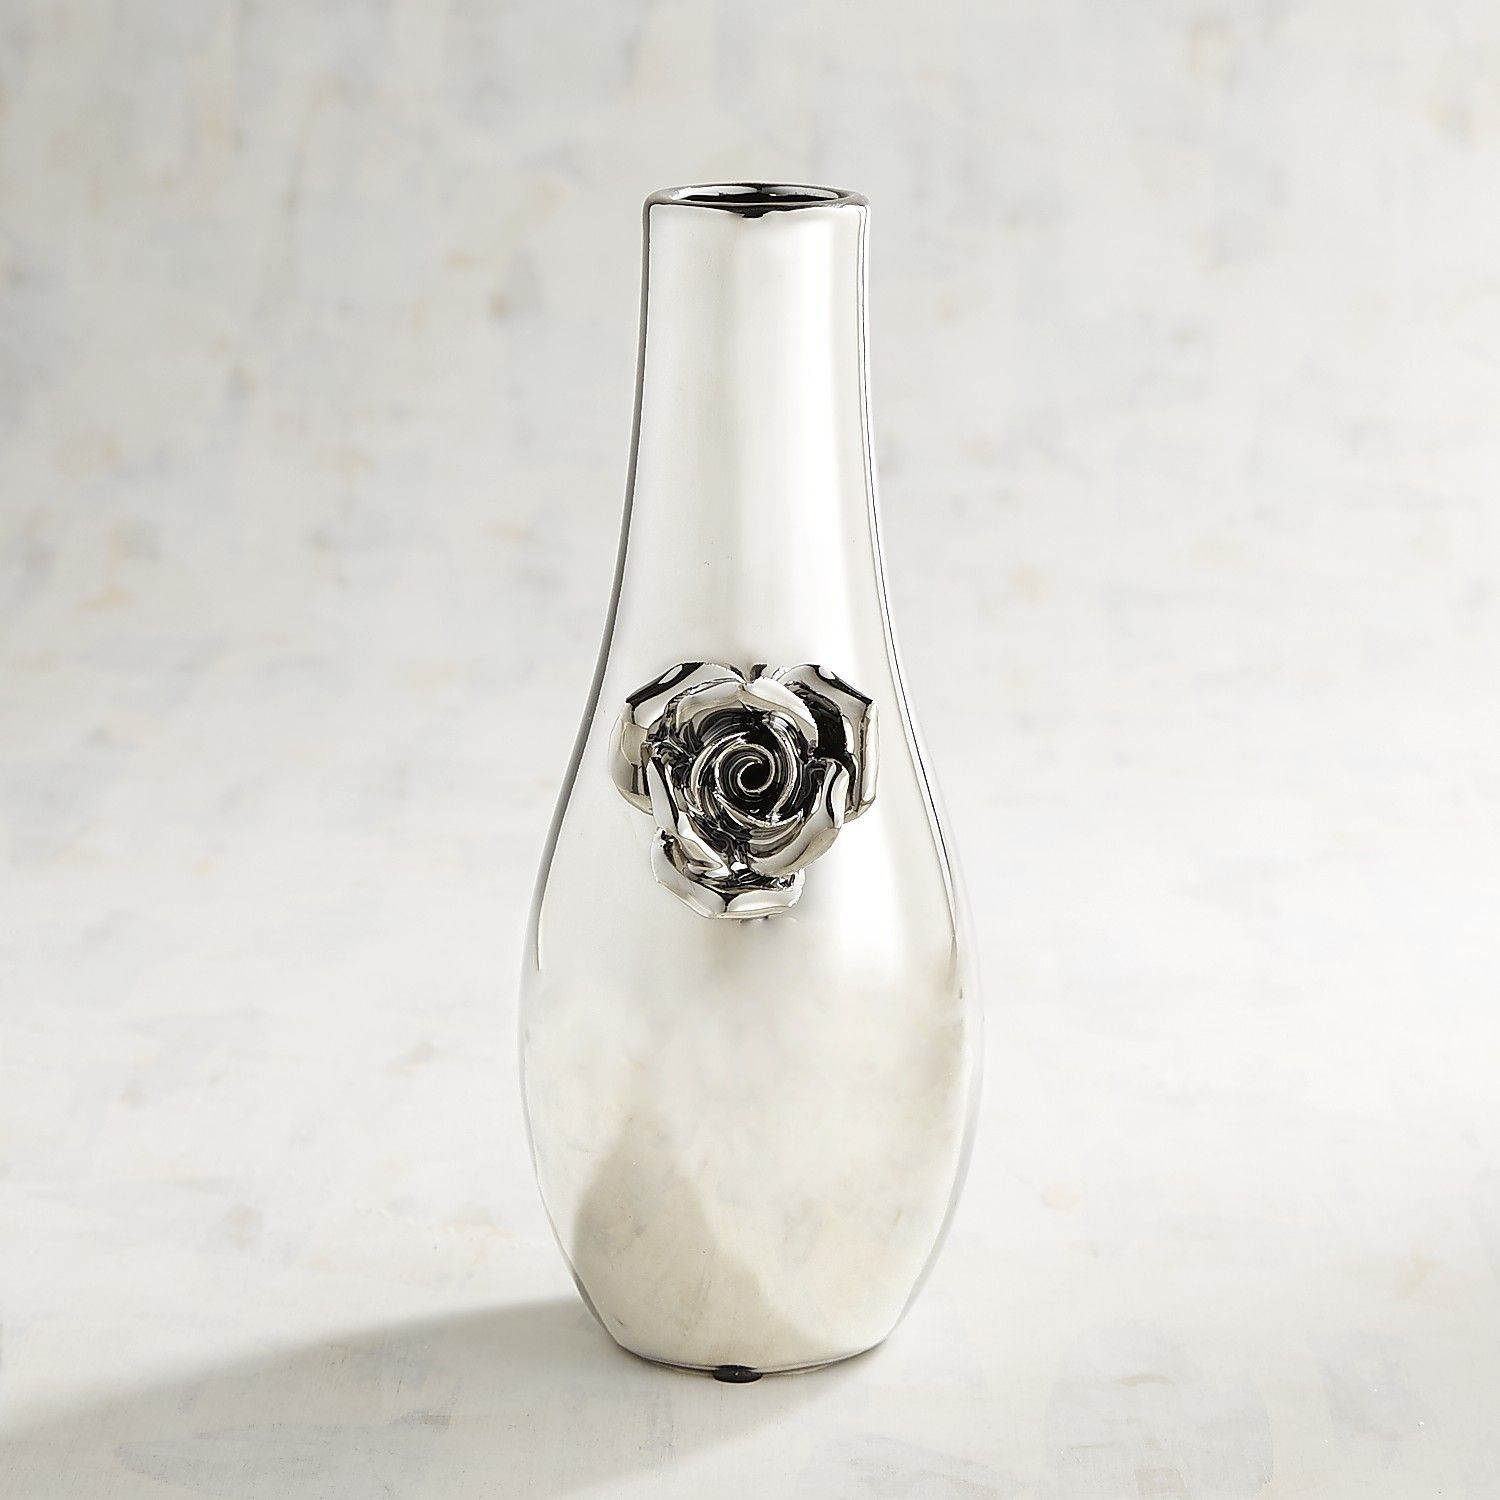 elegant expressions vase of pics of silver bud vases vases artificial plants collection intended for silver bud vases collection silver bud vase with flower pinterest of pics of silver bud vases